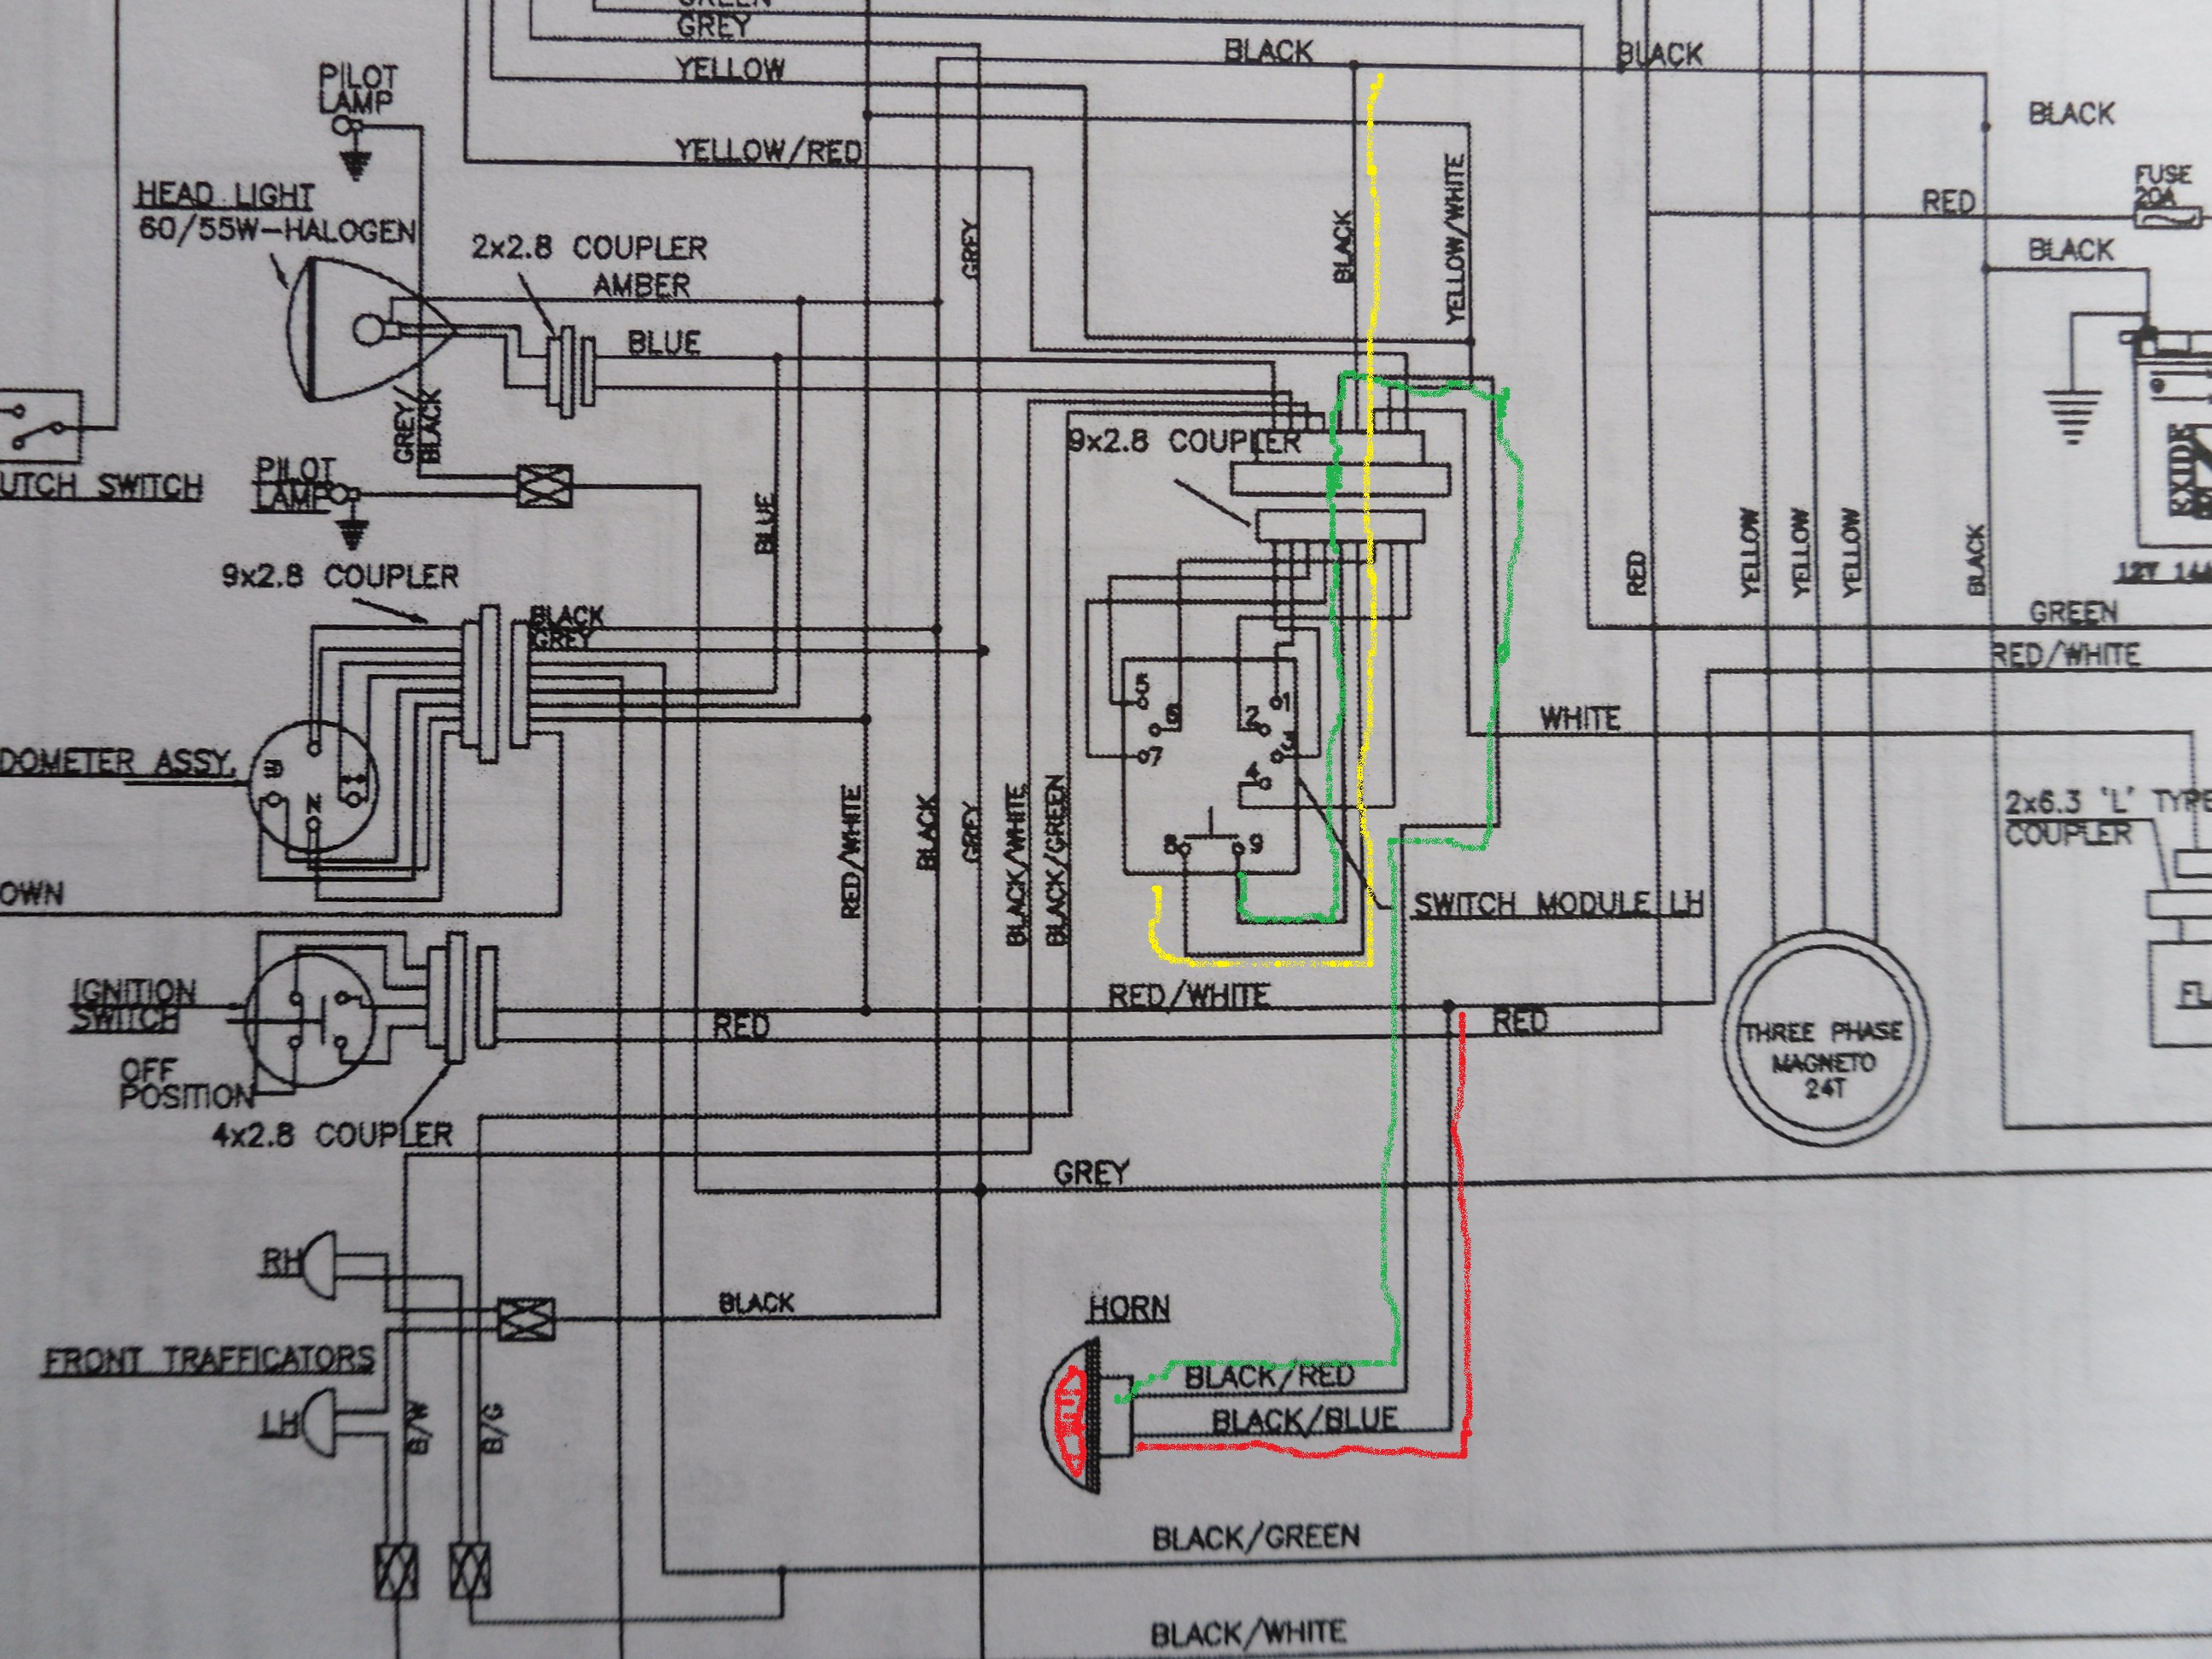 Royal Enfield Wiring Diagram Royal Home Wiring Diagrams – Royal Enfield Wiring Diagram